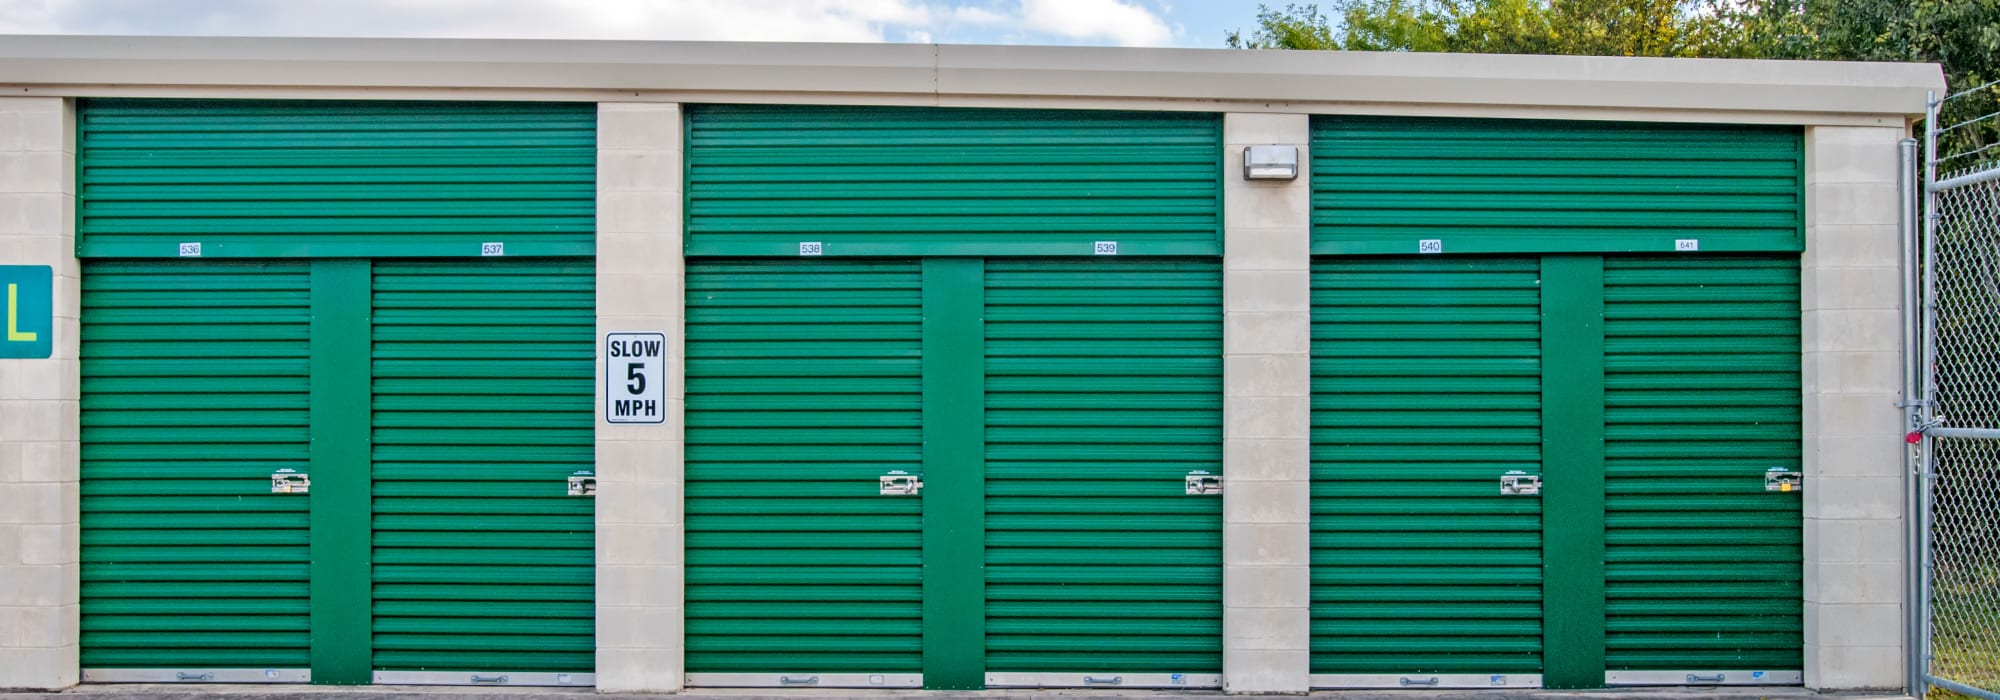 Drive-up storage lockers available for rent at Lockaway Storage in San Antonio, Texas